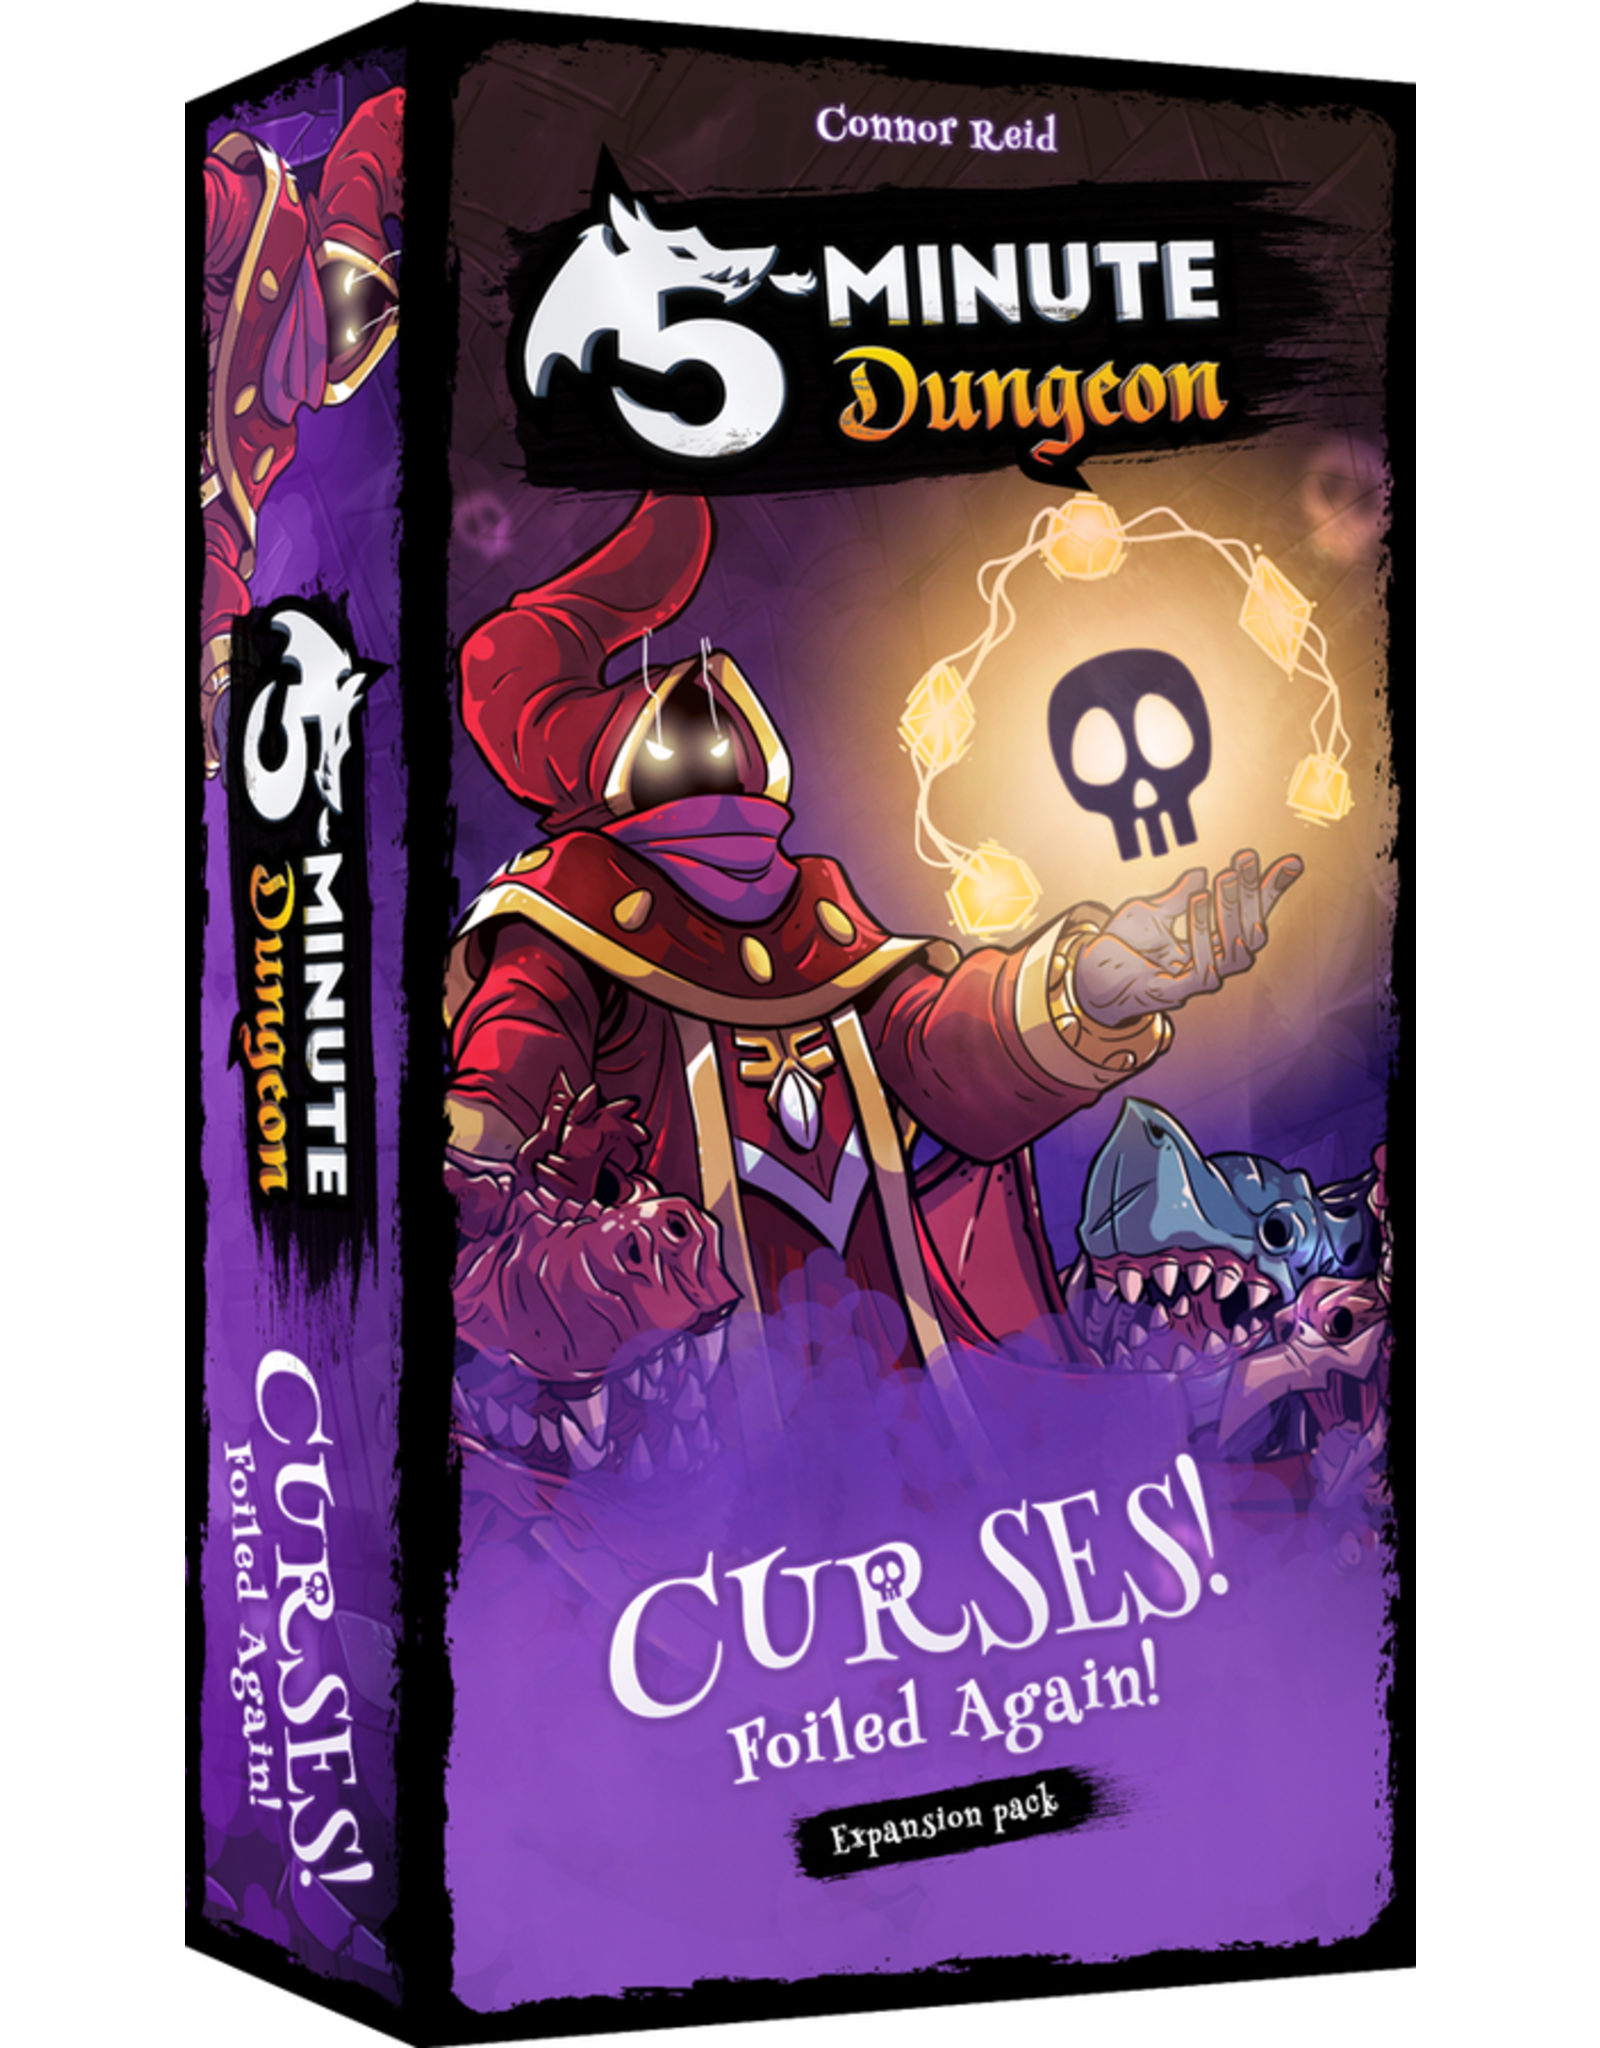 Kosmos 5-MINUTE DUNGEON: CURSES! FOILED AGAIN!